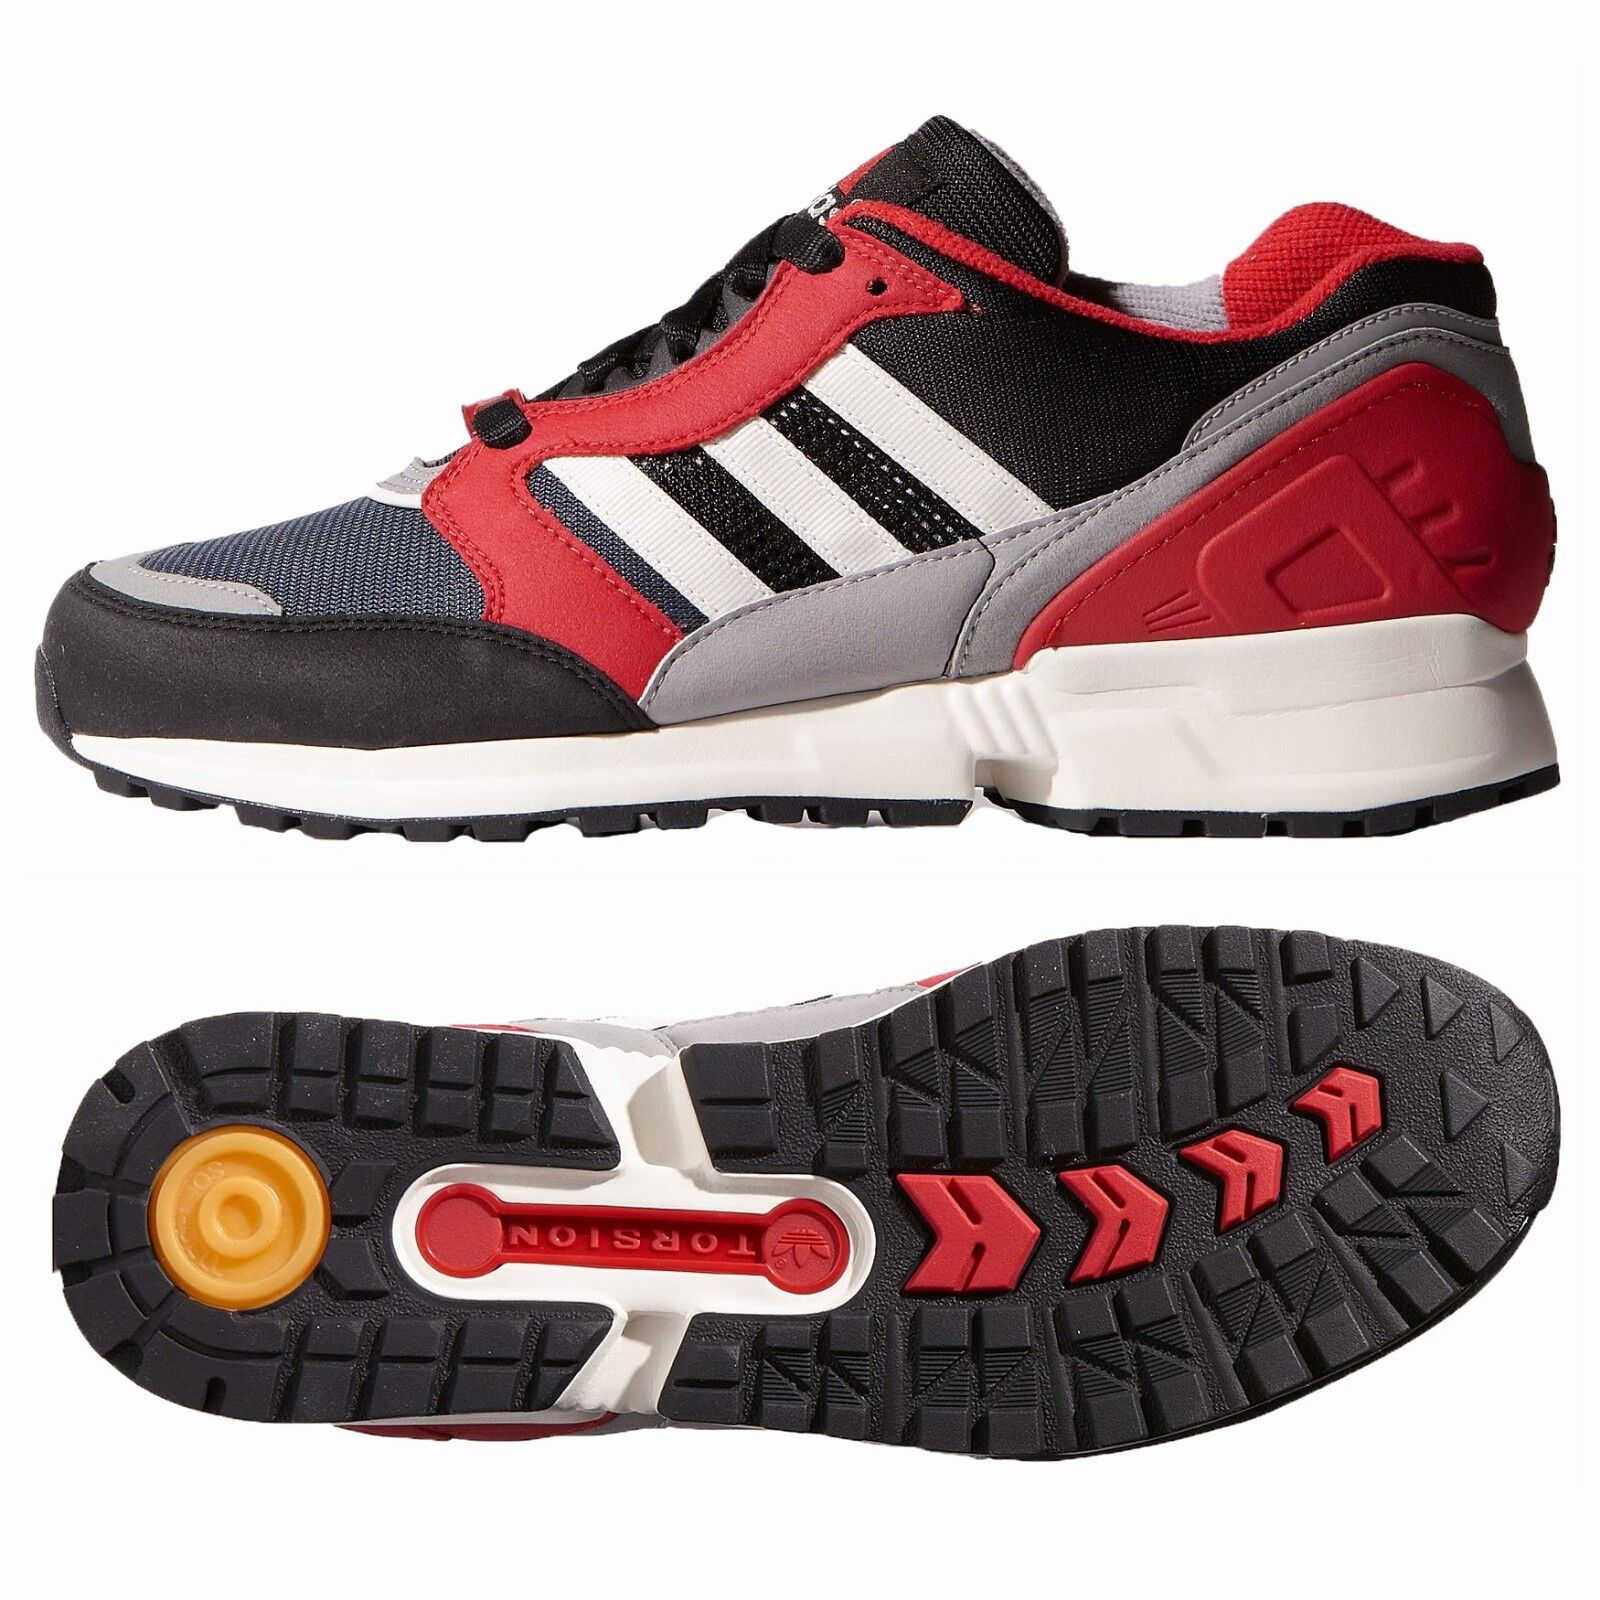 Adidas Originals EQT '91 Equipment Running Cushion M25763 Black/Red Men's Shoes